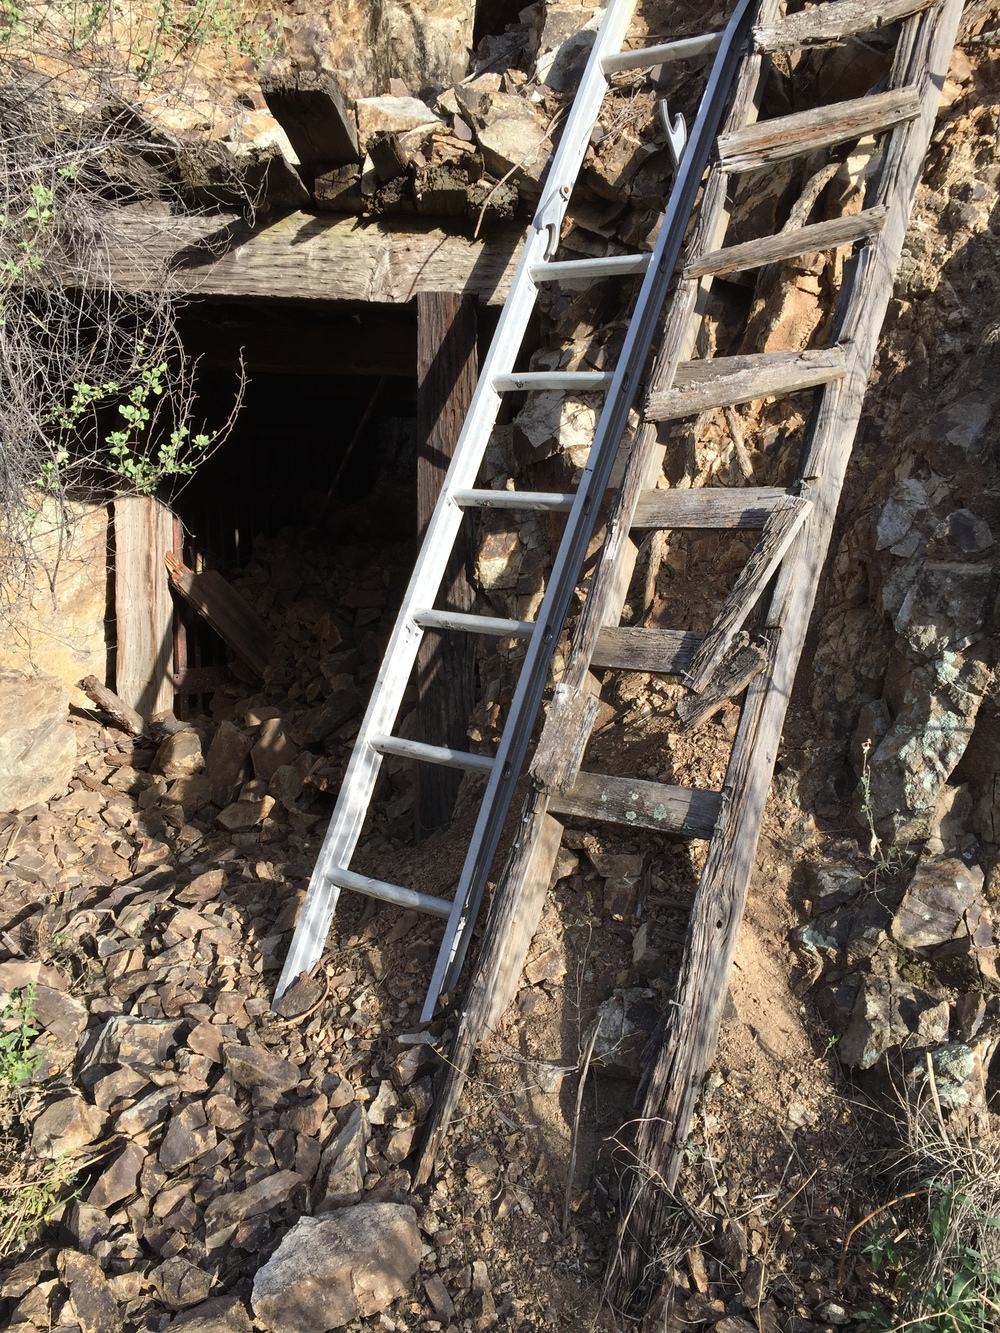 Cool! A ladder! Maybe I'll climb up and see what cool things are inside the mine shaft...